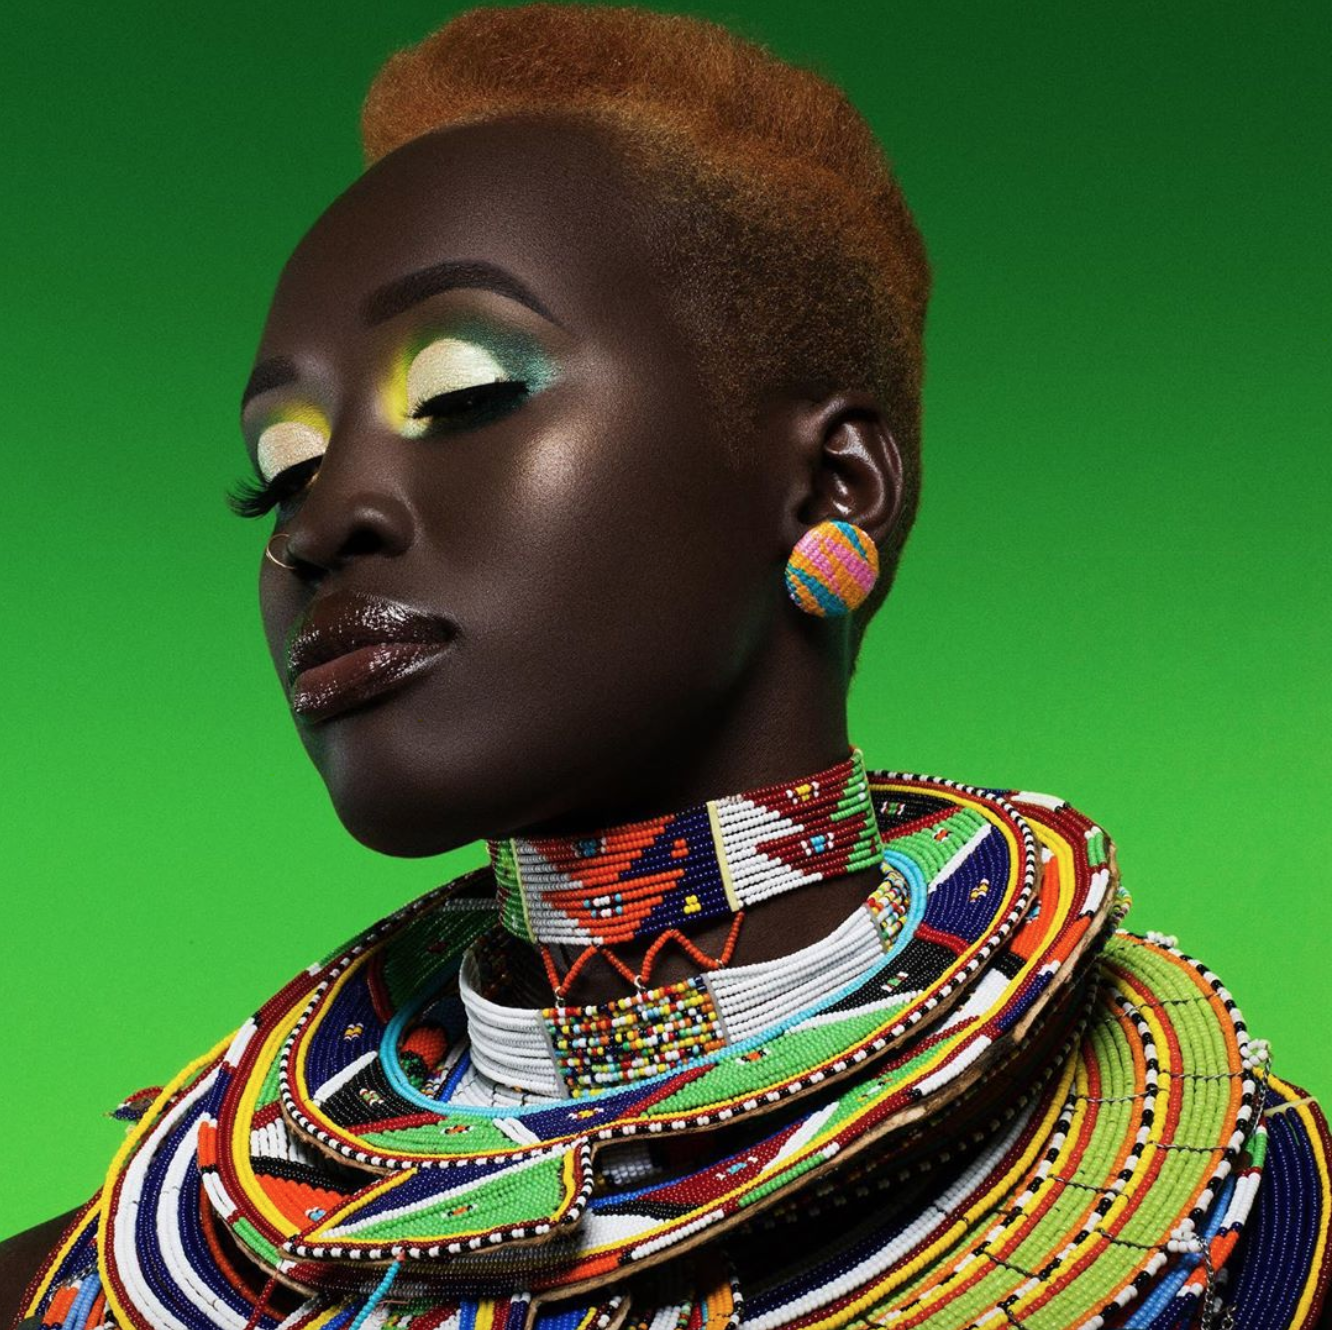 A model poses in a vibrant, colorful advertisement for Juvia's Place.